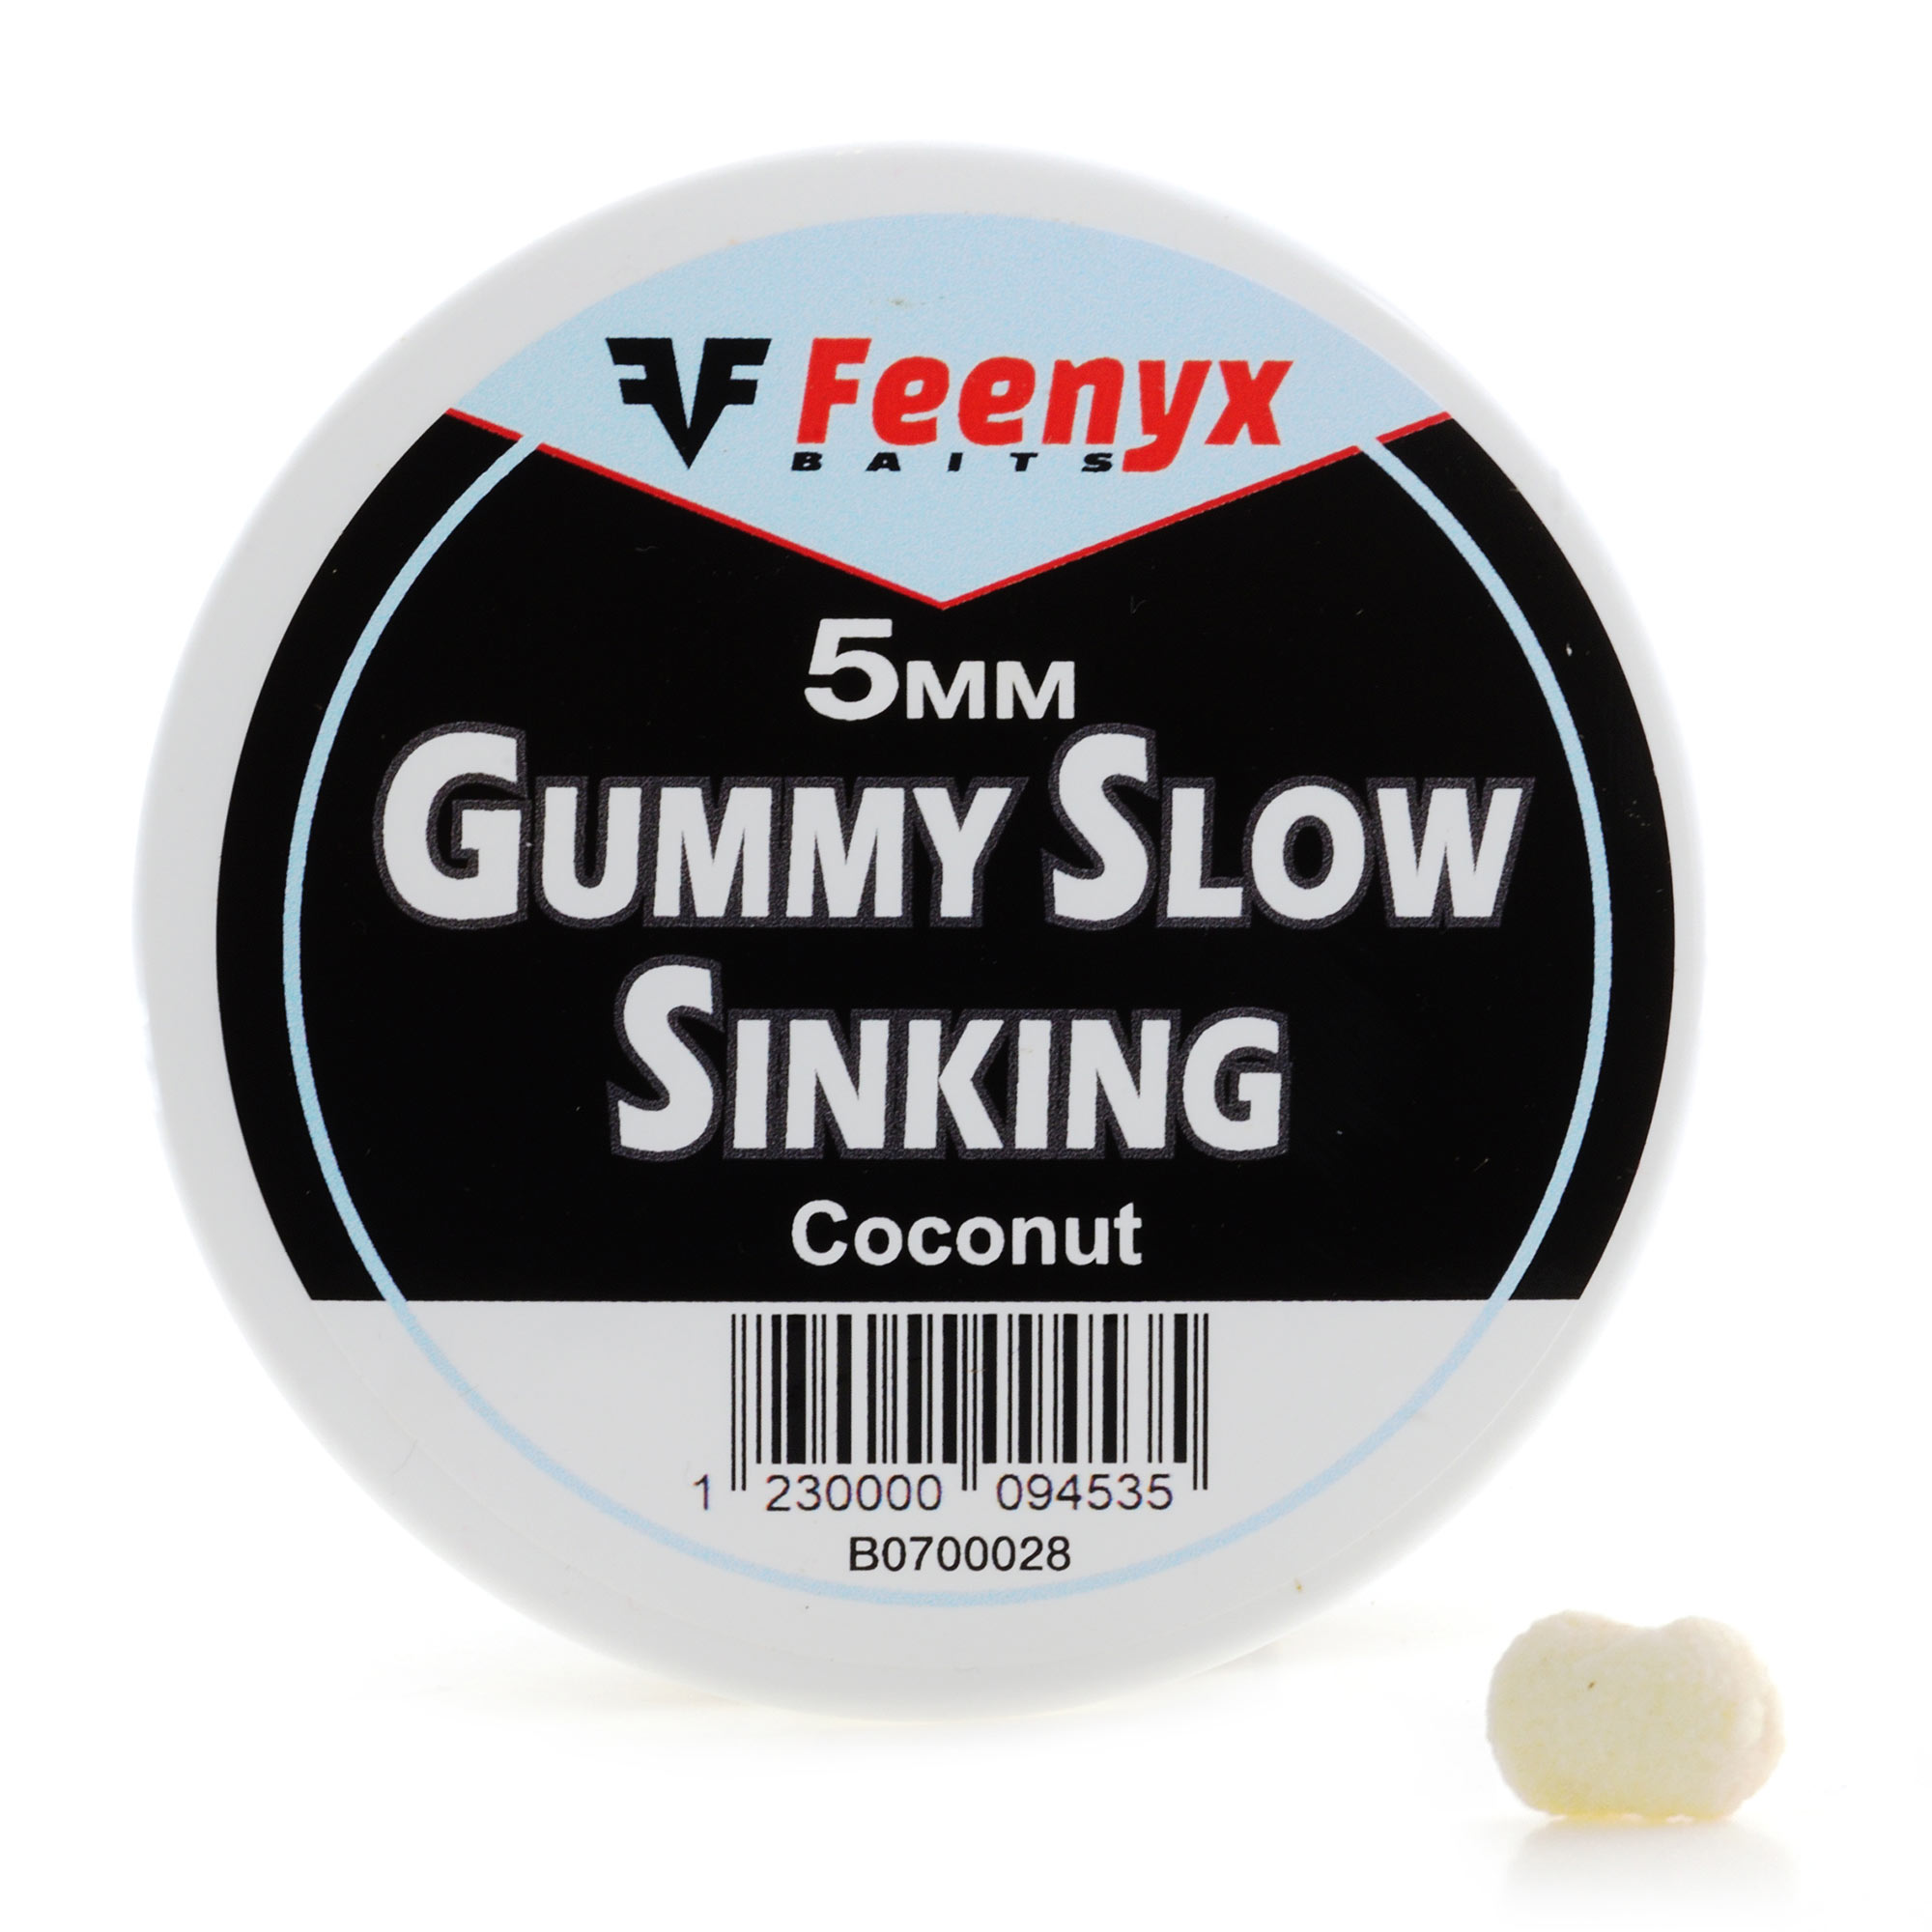 Gummy Slow Sinking Coconut 5mm FEENYX BAIT